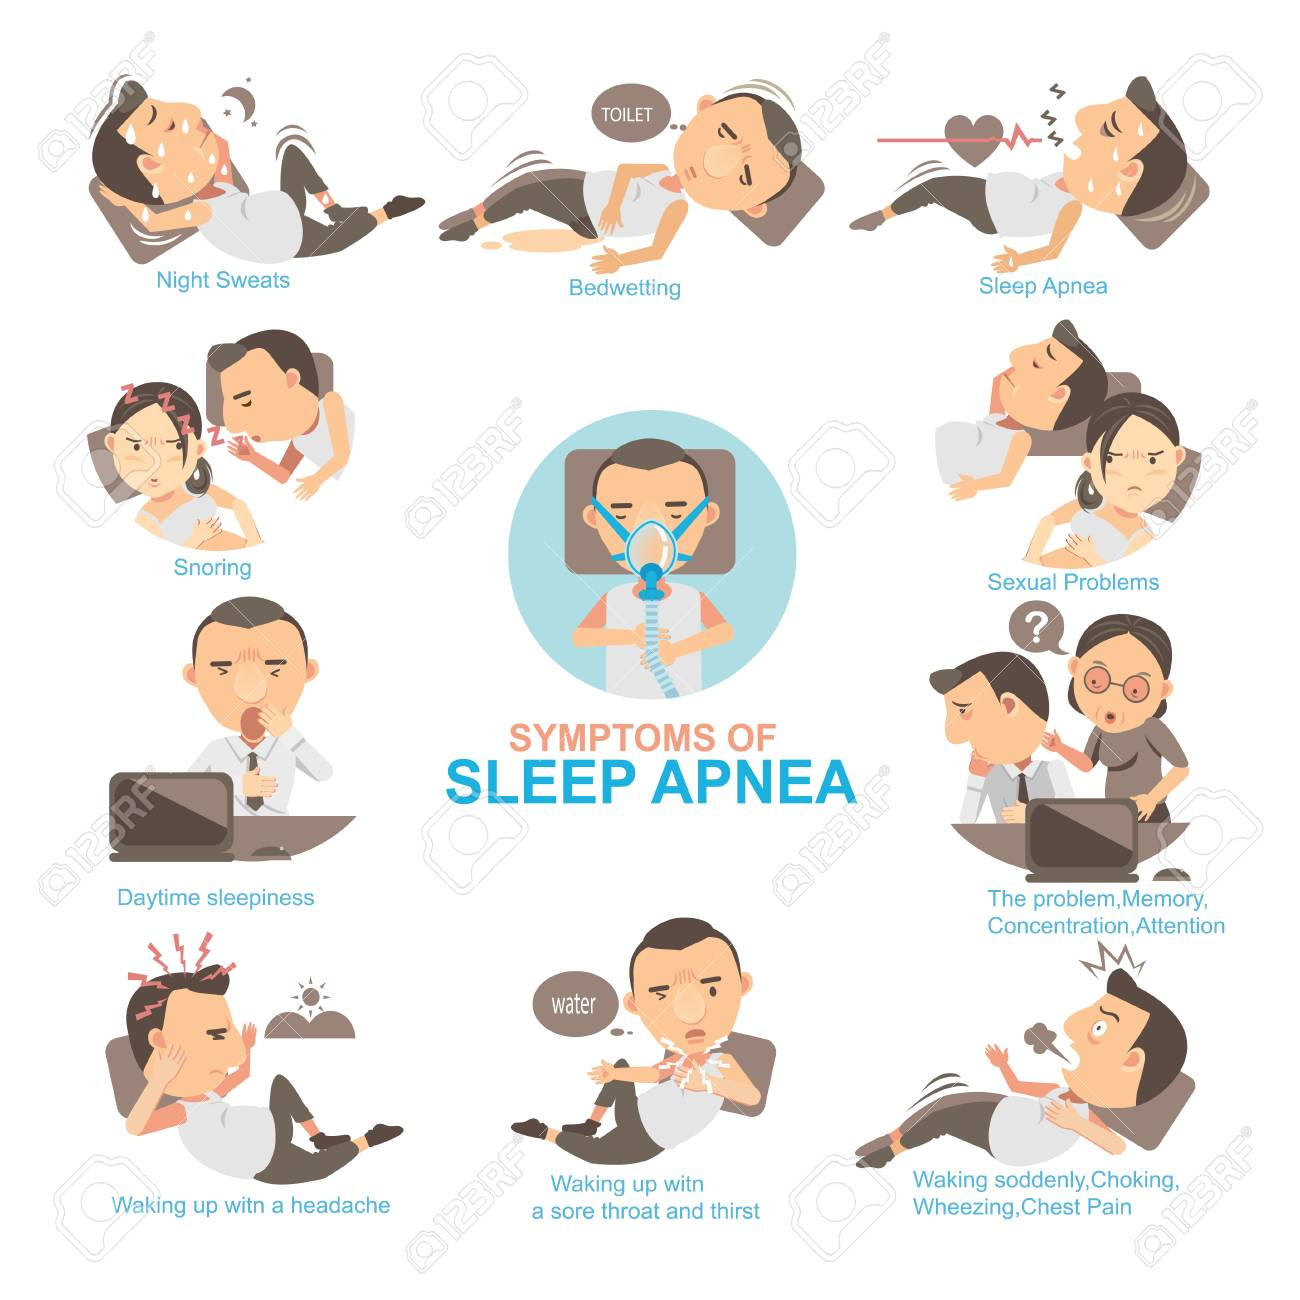 Man Symptoms and signs sleeping apnea The impact on married life and his work.Info Graphics vector illustrations - 93128728